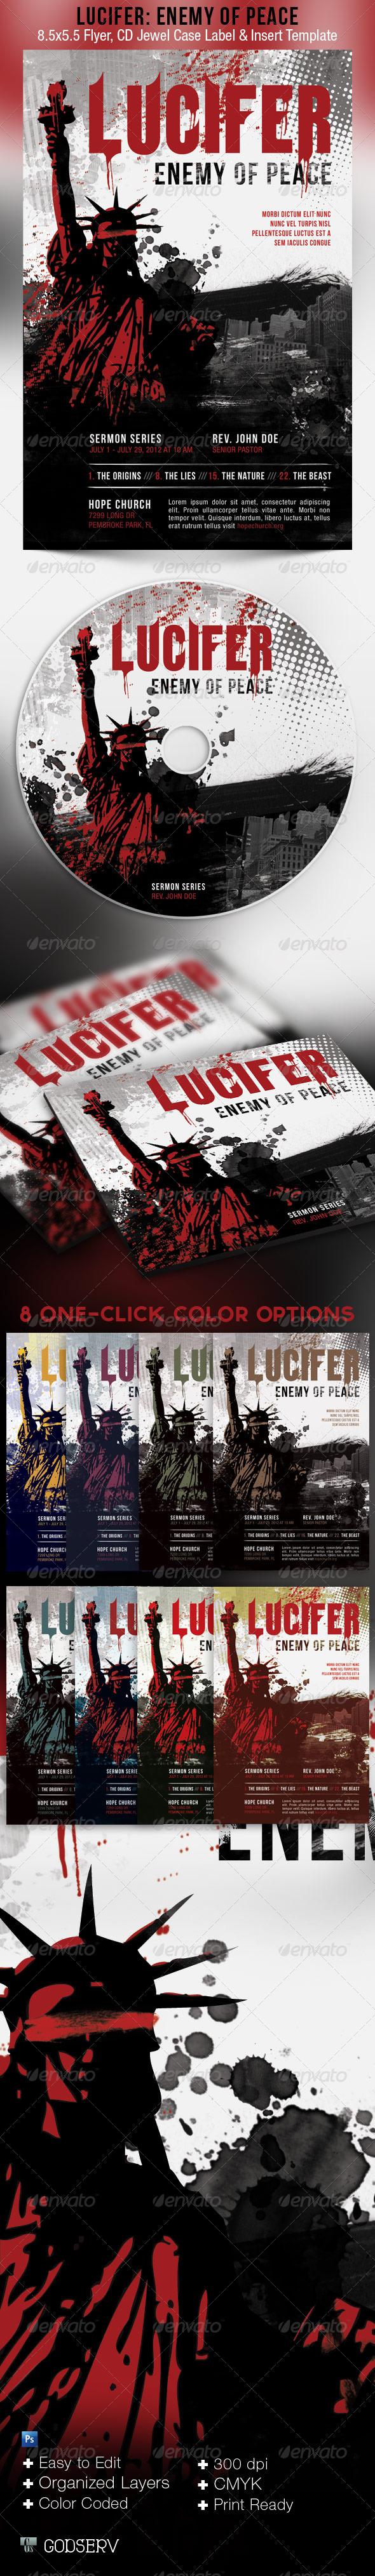 Peace Enemy Flyer CD Template - Church Flyers